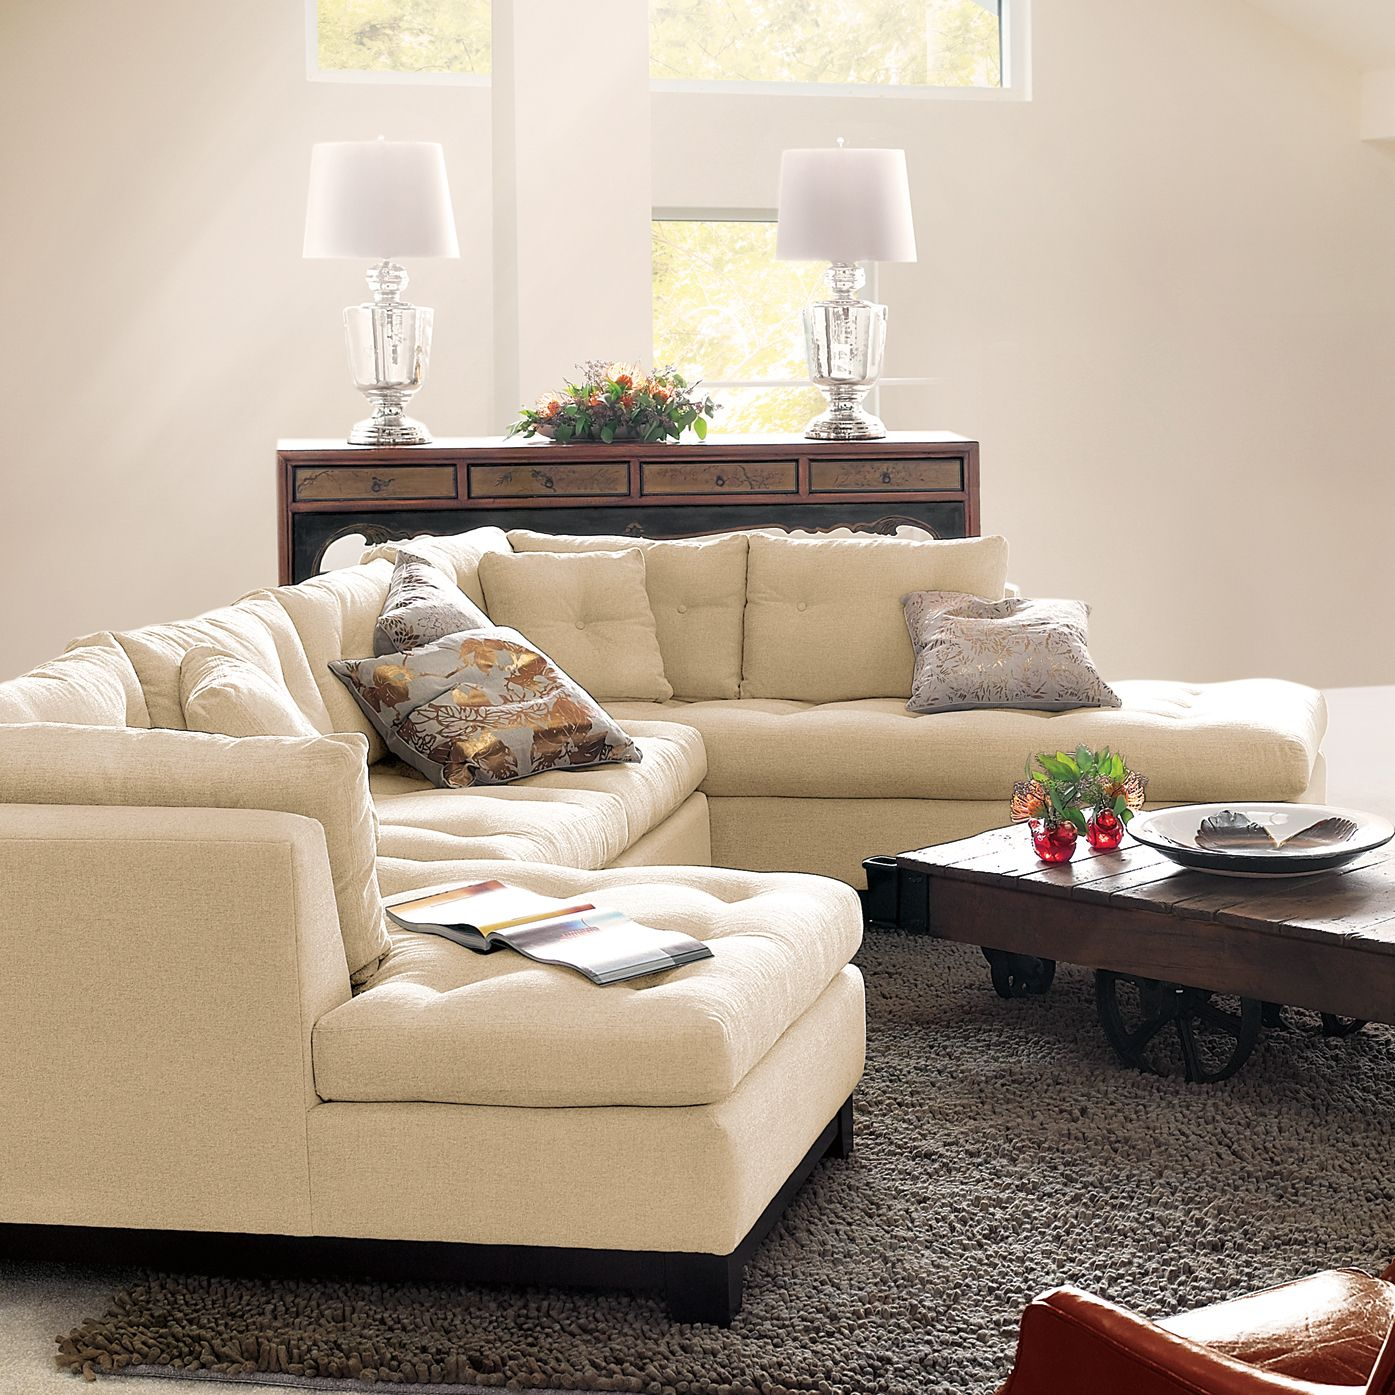 arhaus palm beach gardens. Garner 3 Piece Sectional Sofa | Arhaus Furniture Palm Beach Gardens